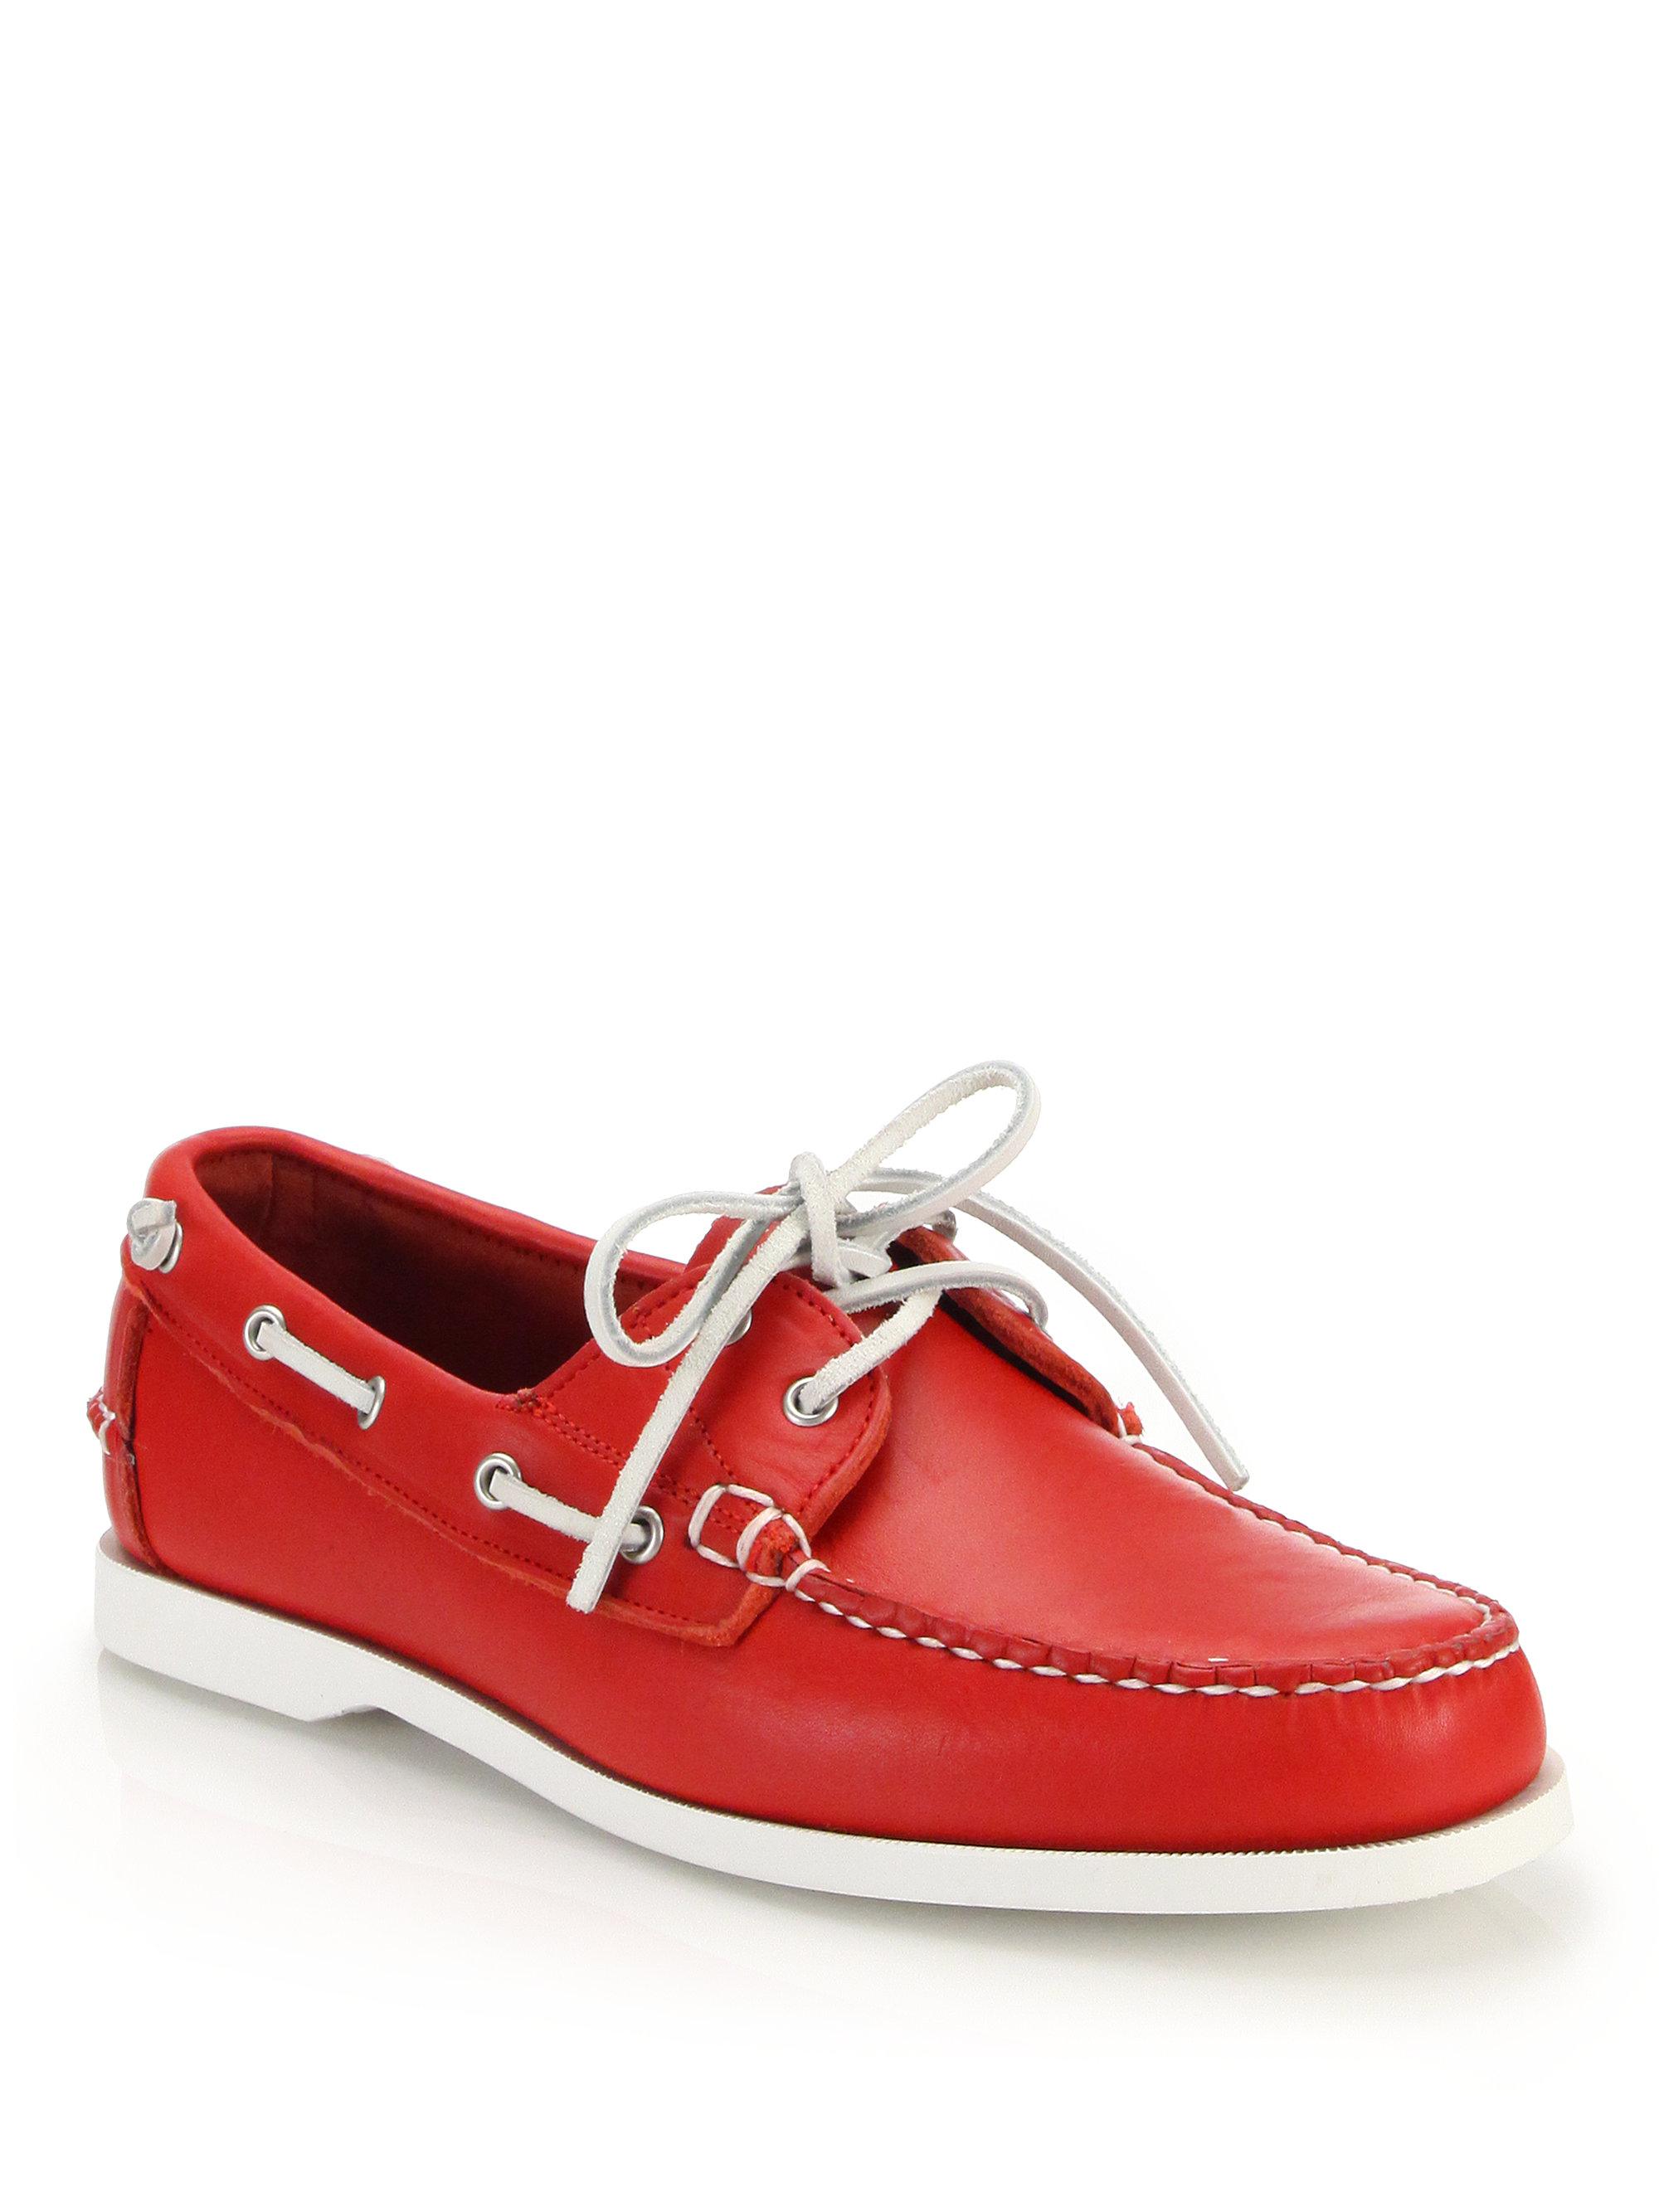 Ralph lauren Telford Leather Boat Shoes in Red for Men | Lyst